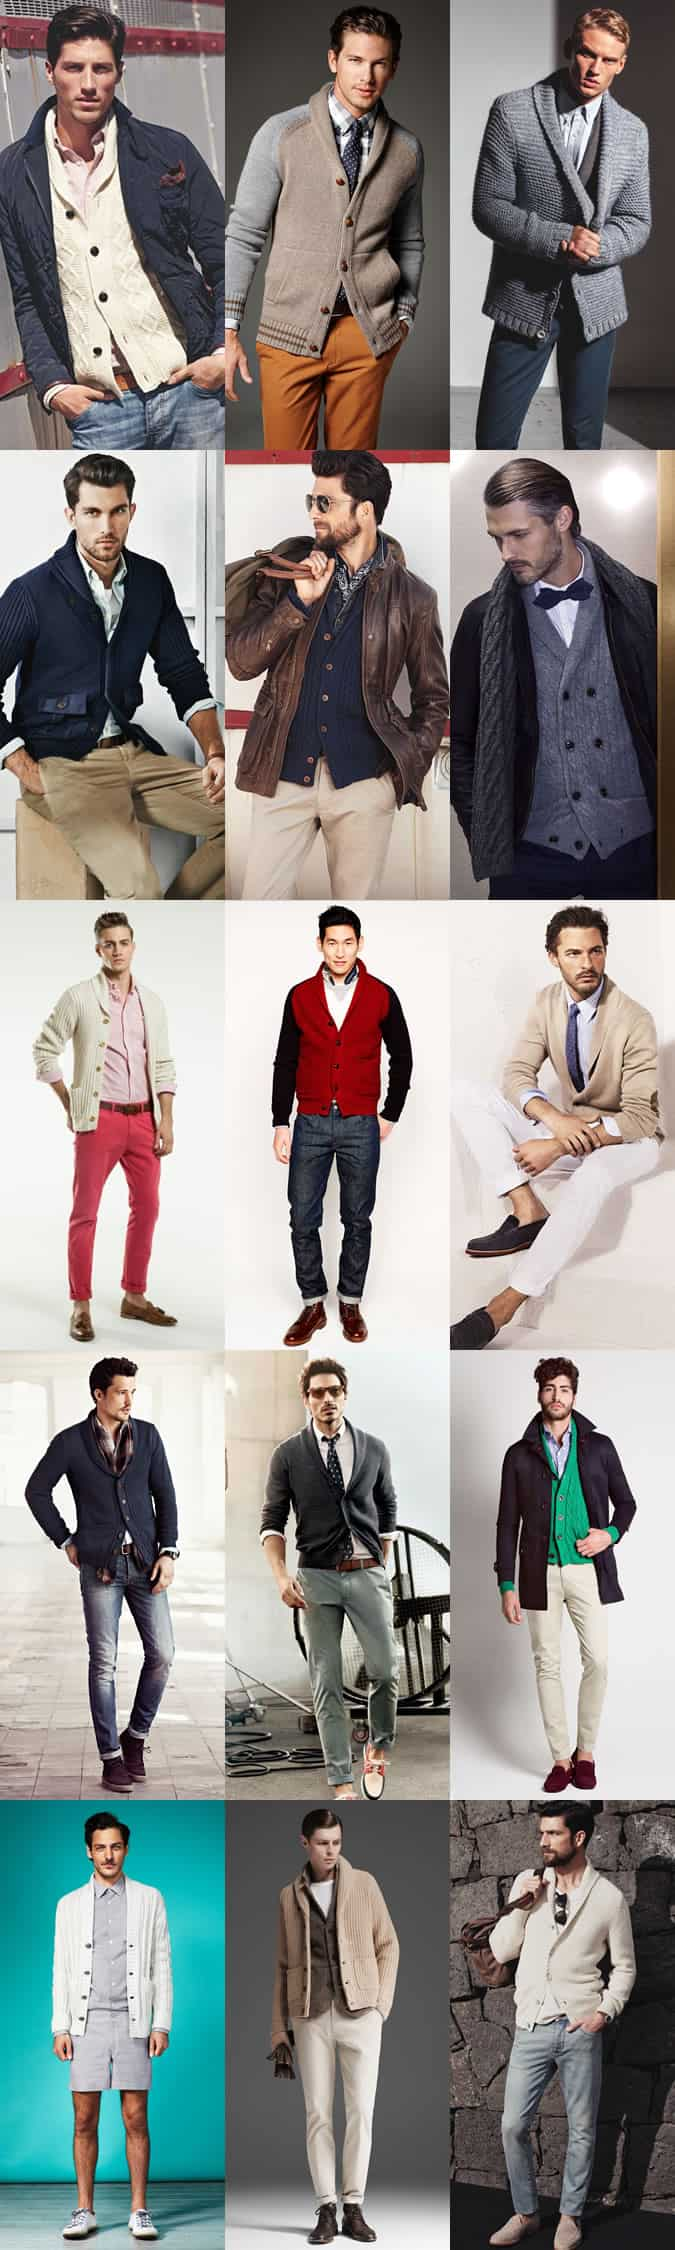 Men's Shawl Neck Cardigan Outfit Inspiration Lookbook